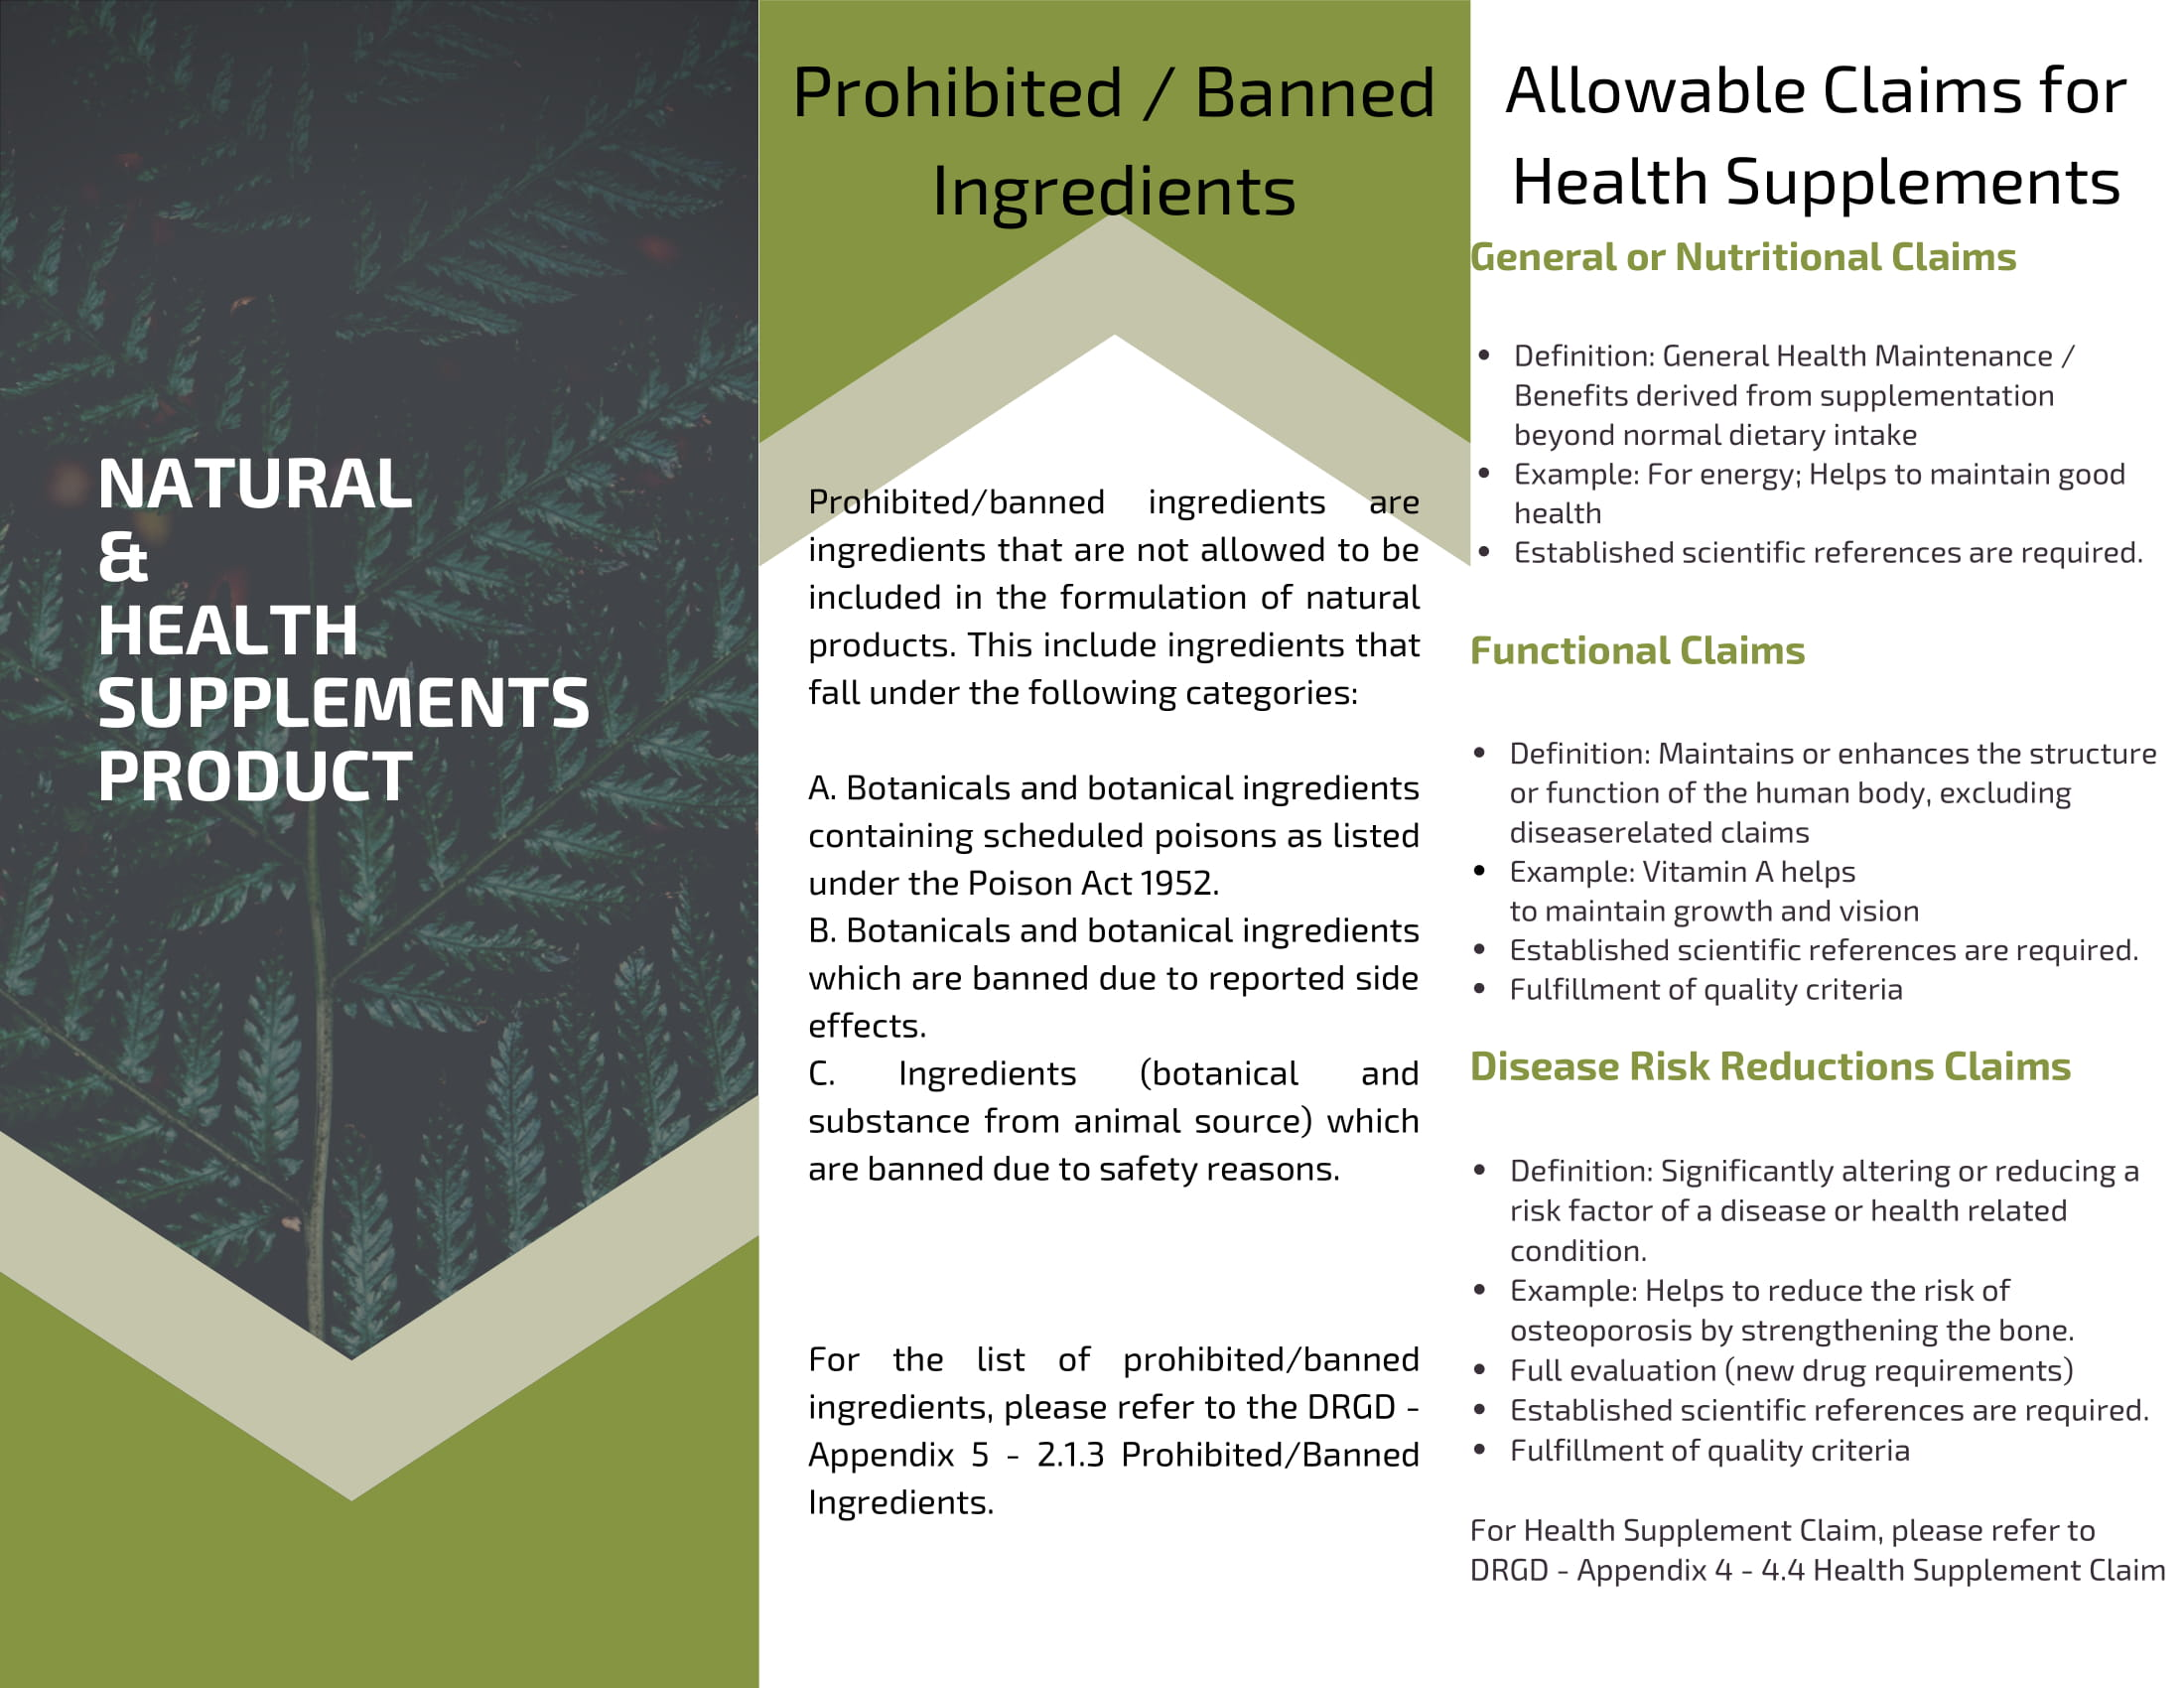 TRADITIONAL MEDICINES & HEALTH SUPPLEMENTS (ALLOWABLE CLAIMS & BANS)